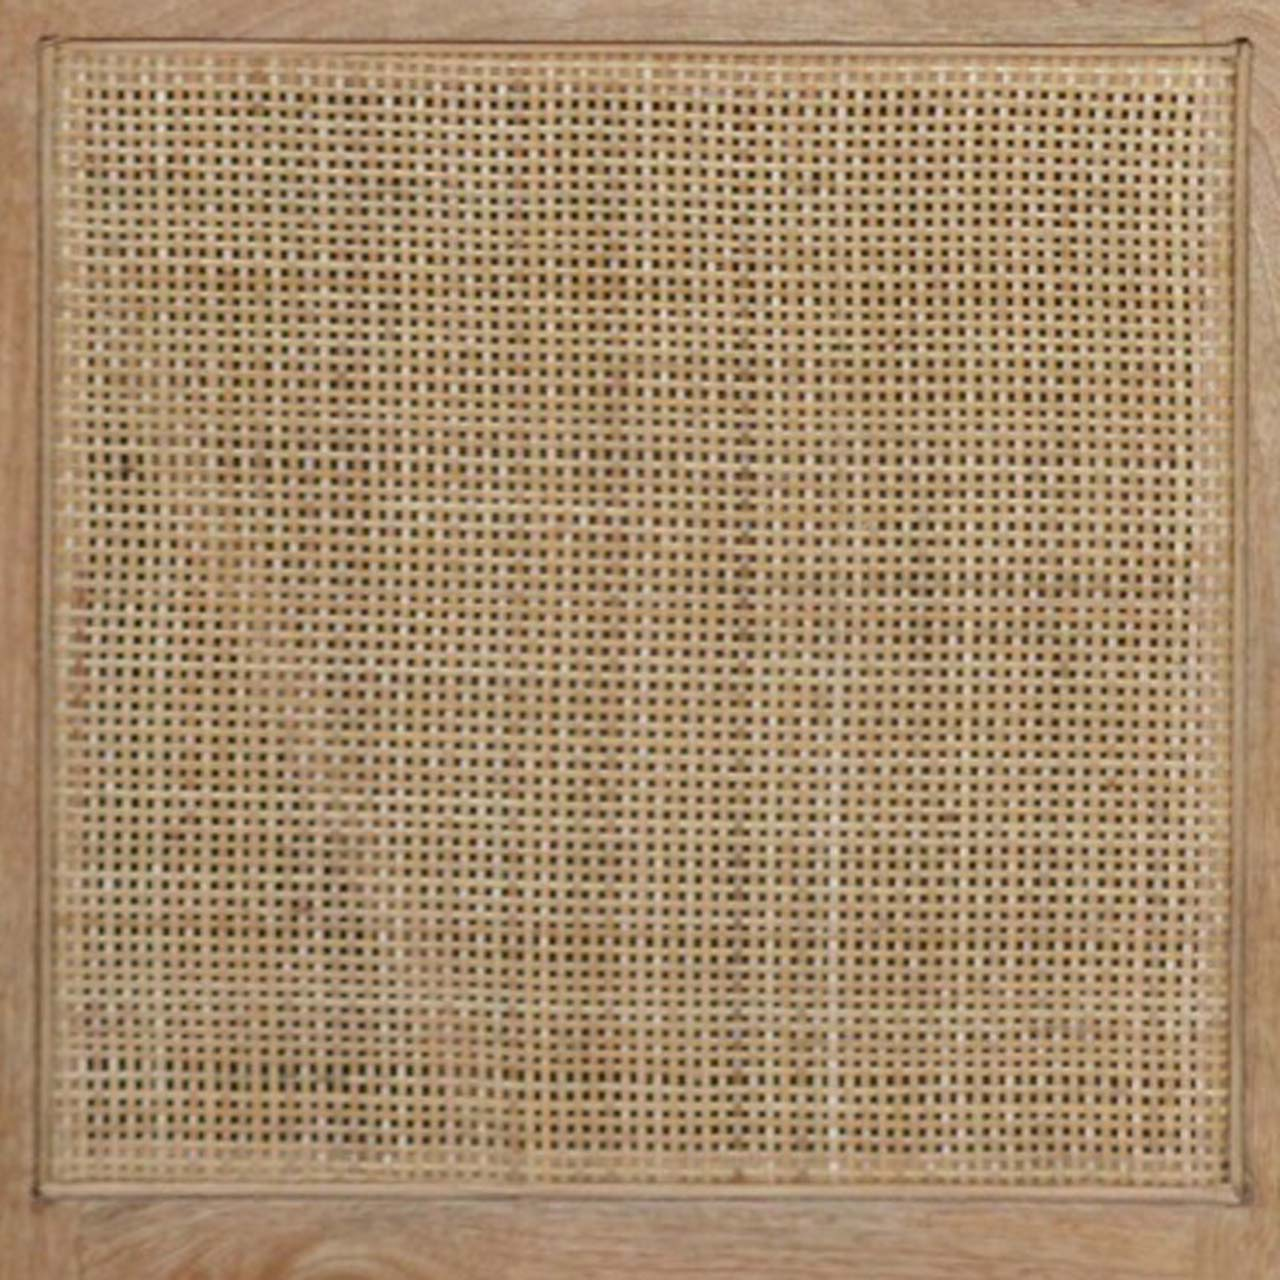 NETTING PATTERN RATTAN WORK FRAME